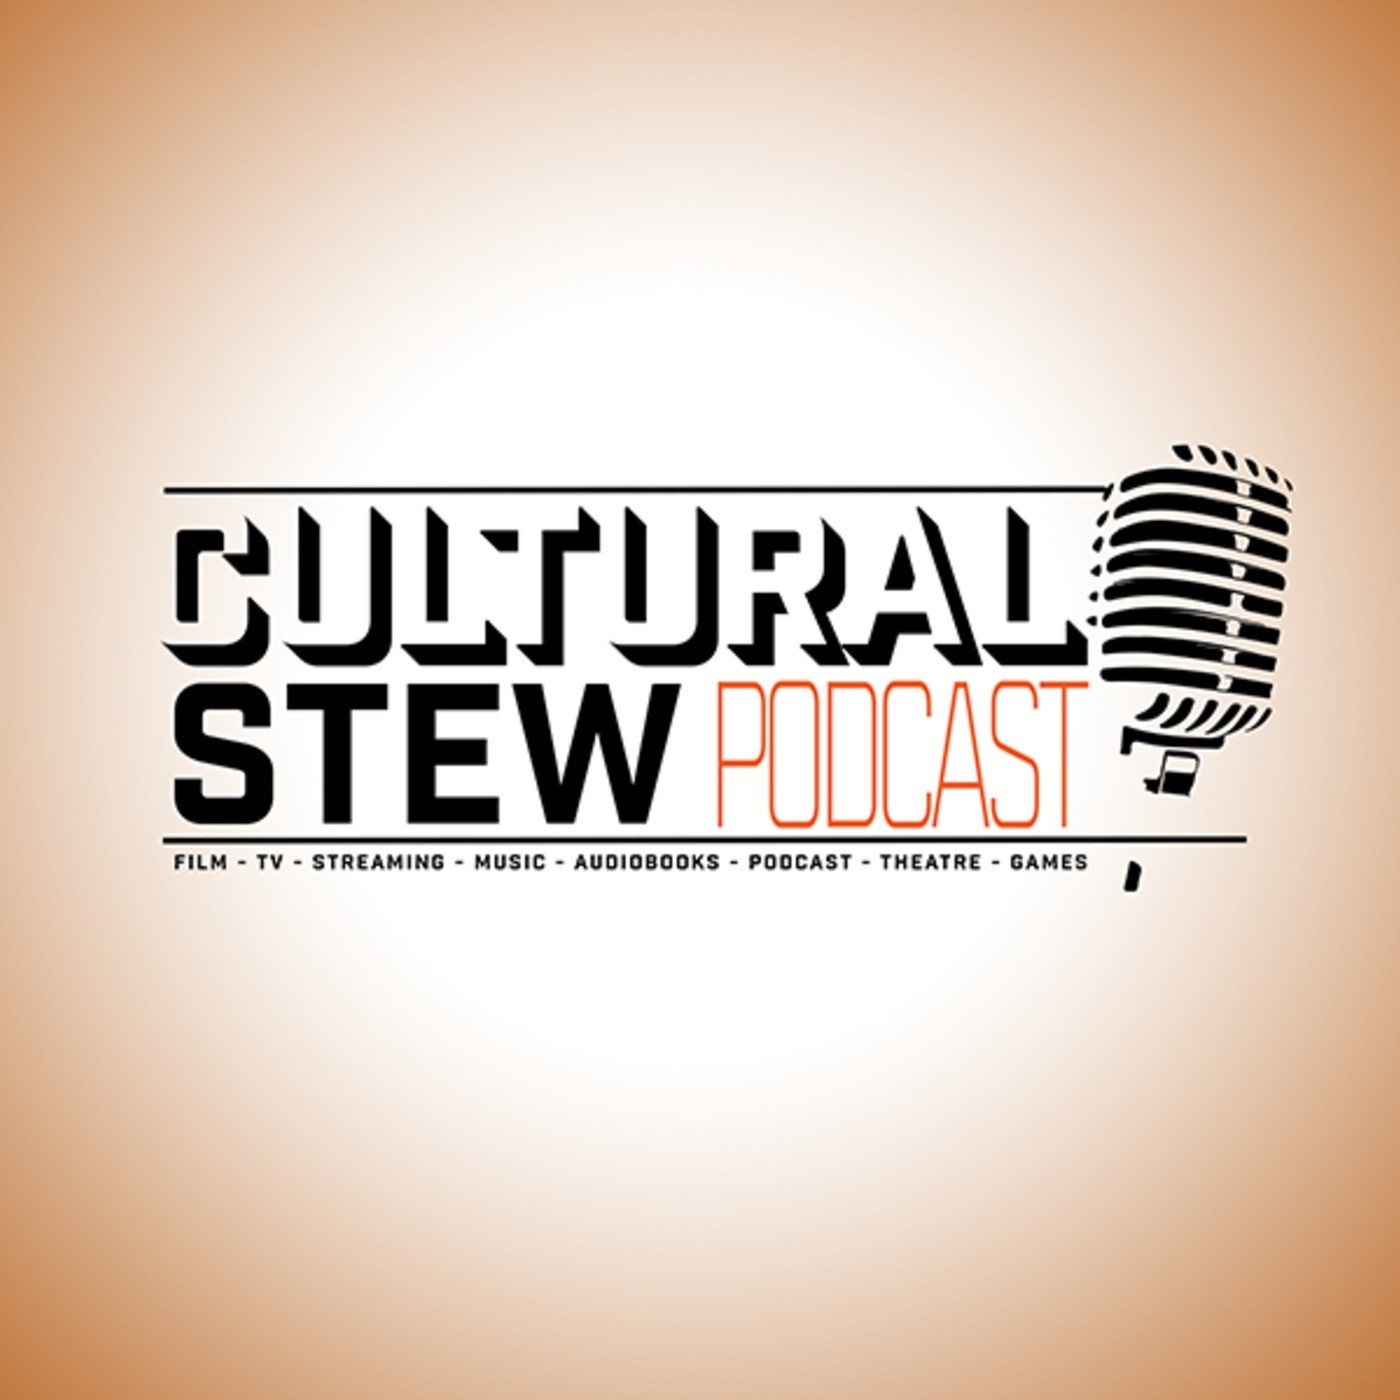 Cultural Stew Podcast: Anima, Spiderman, Off Road Ramblings